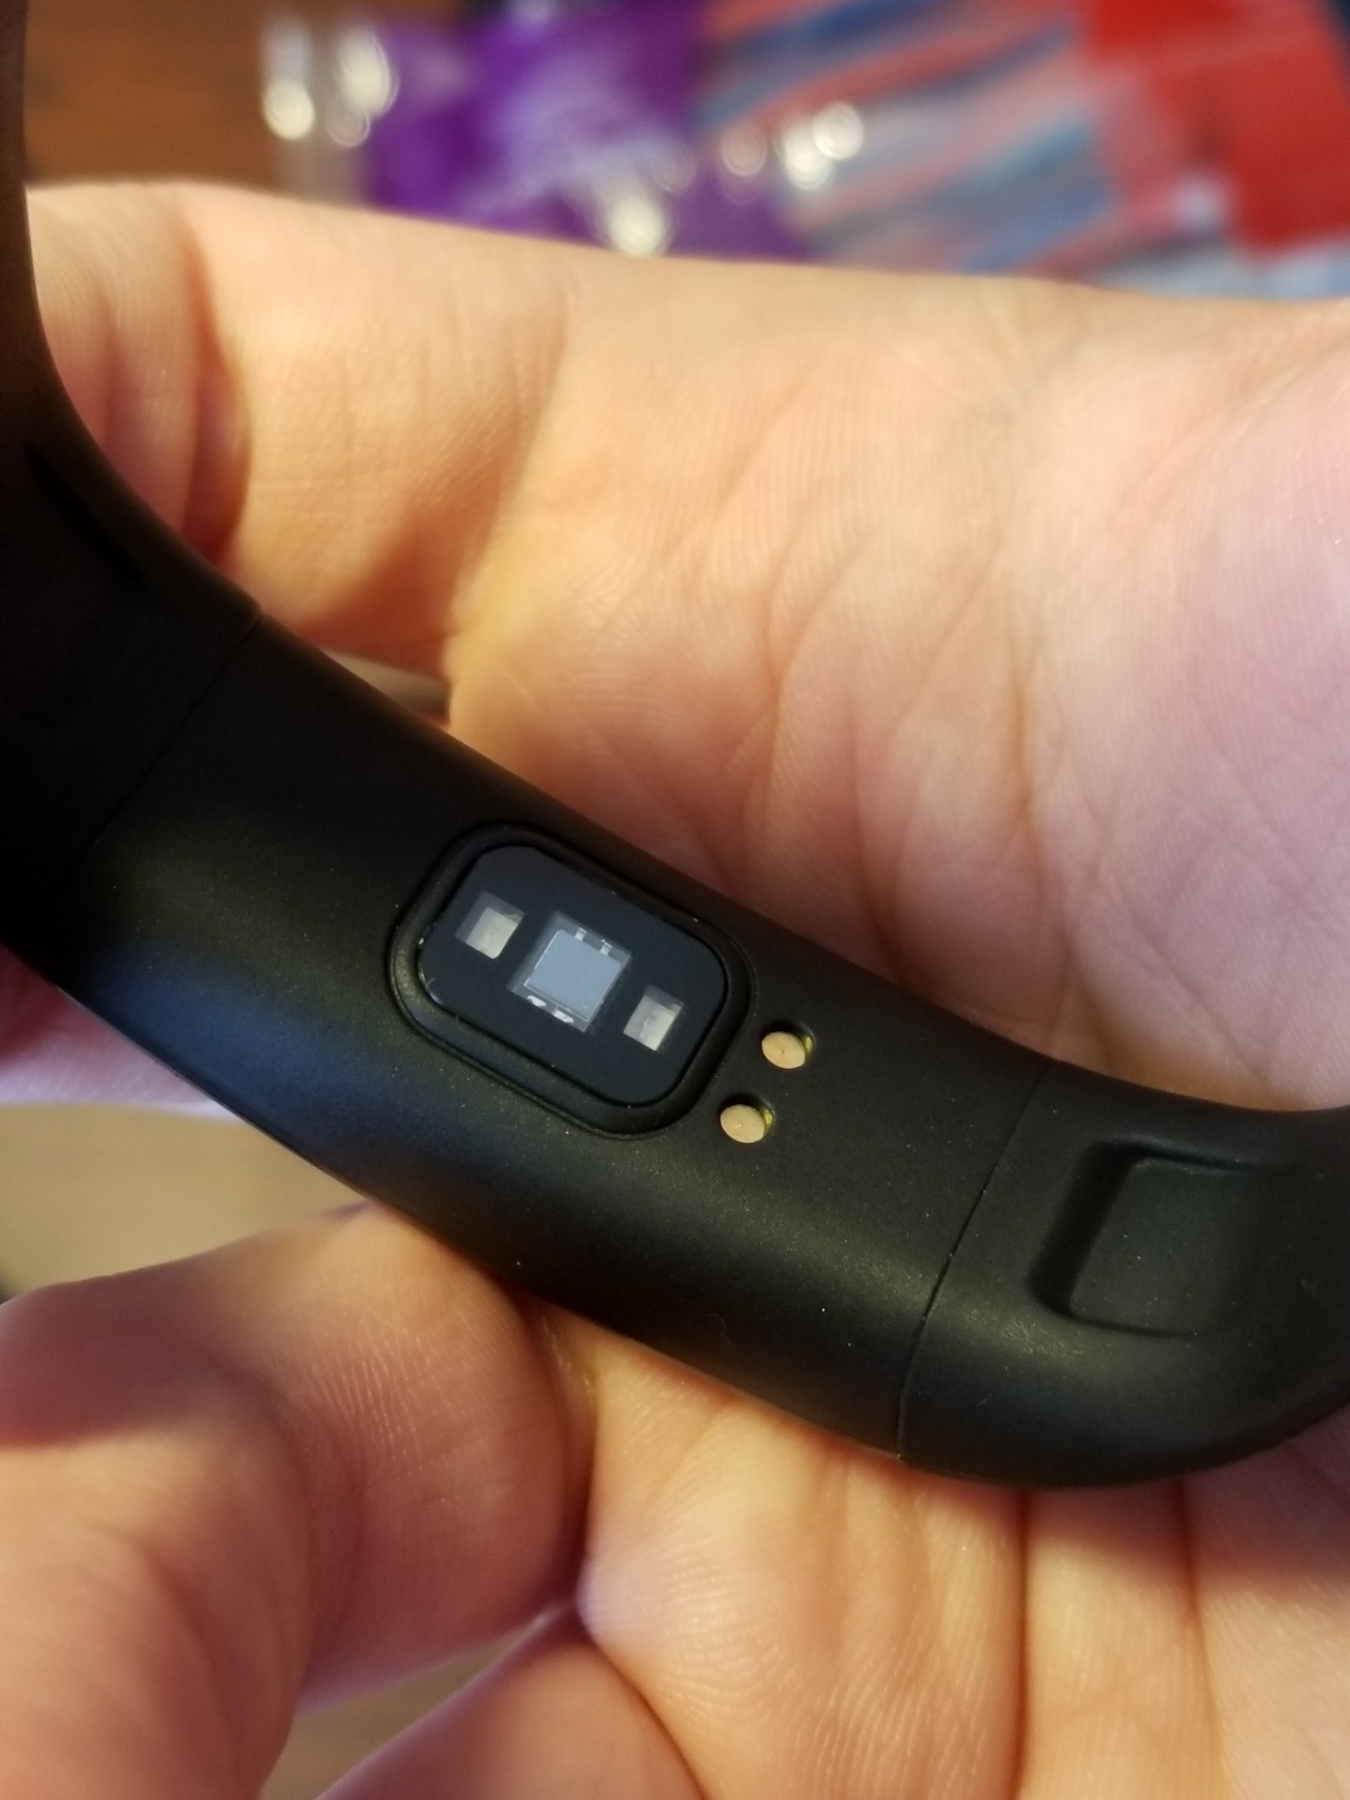 Overall, good enough fitness band for beginners. (December 17, 2017)